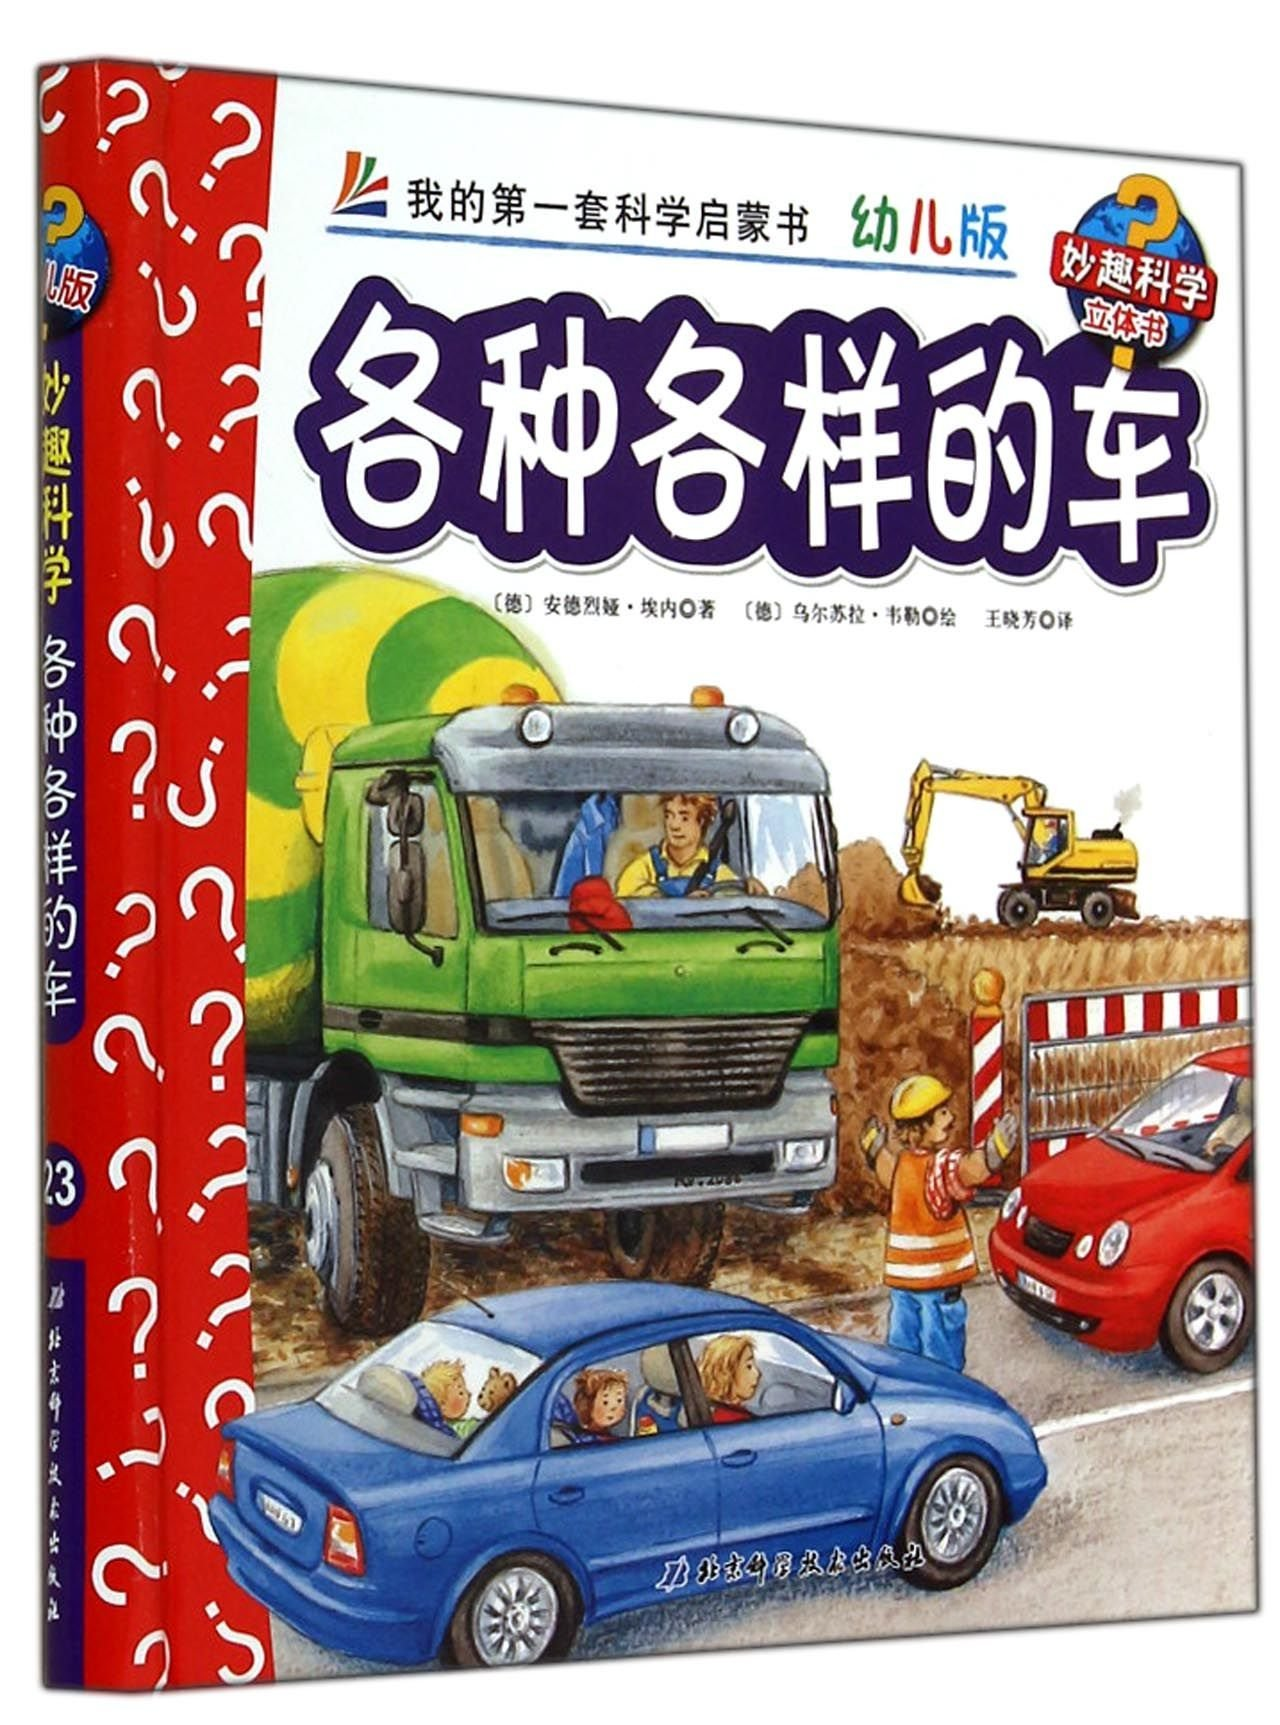 Download A wide variety of vehicles (Preschool Edition) (fine) wonders of science pop-up book(Chinese Edition) pdf